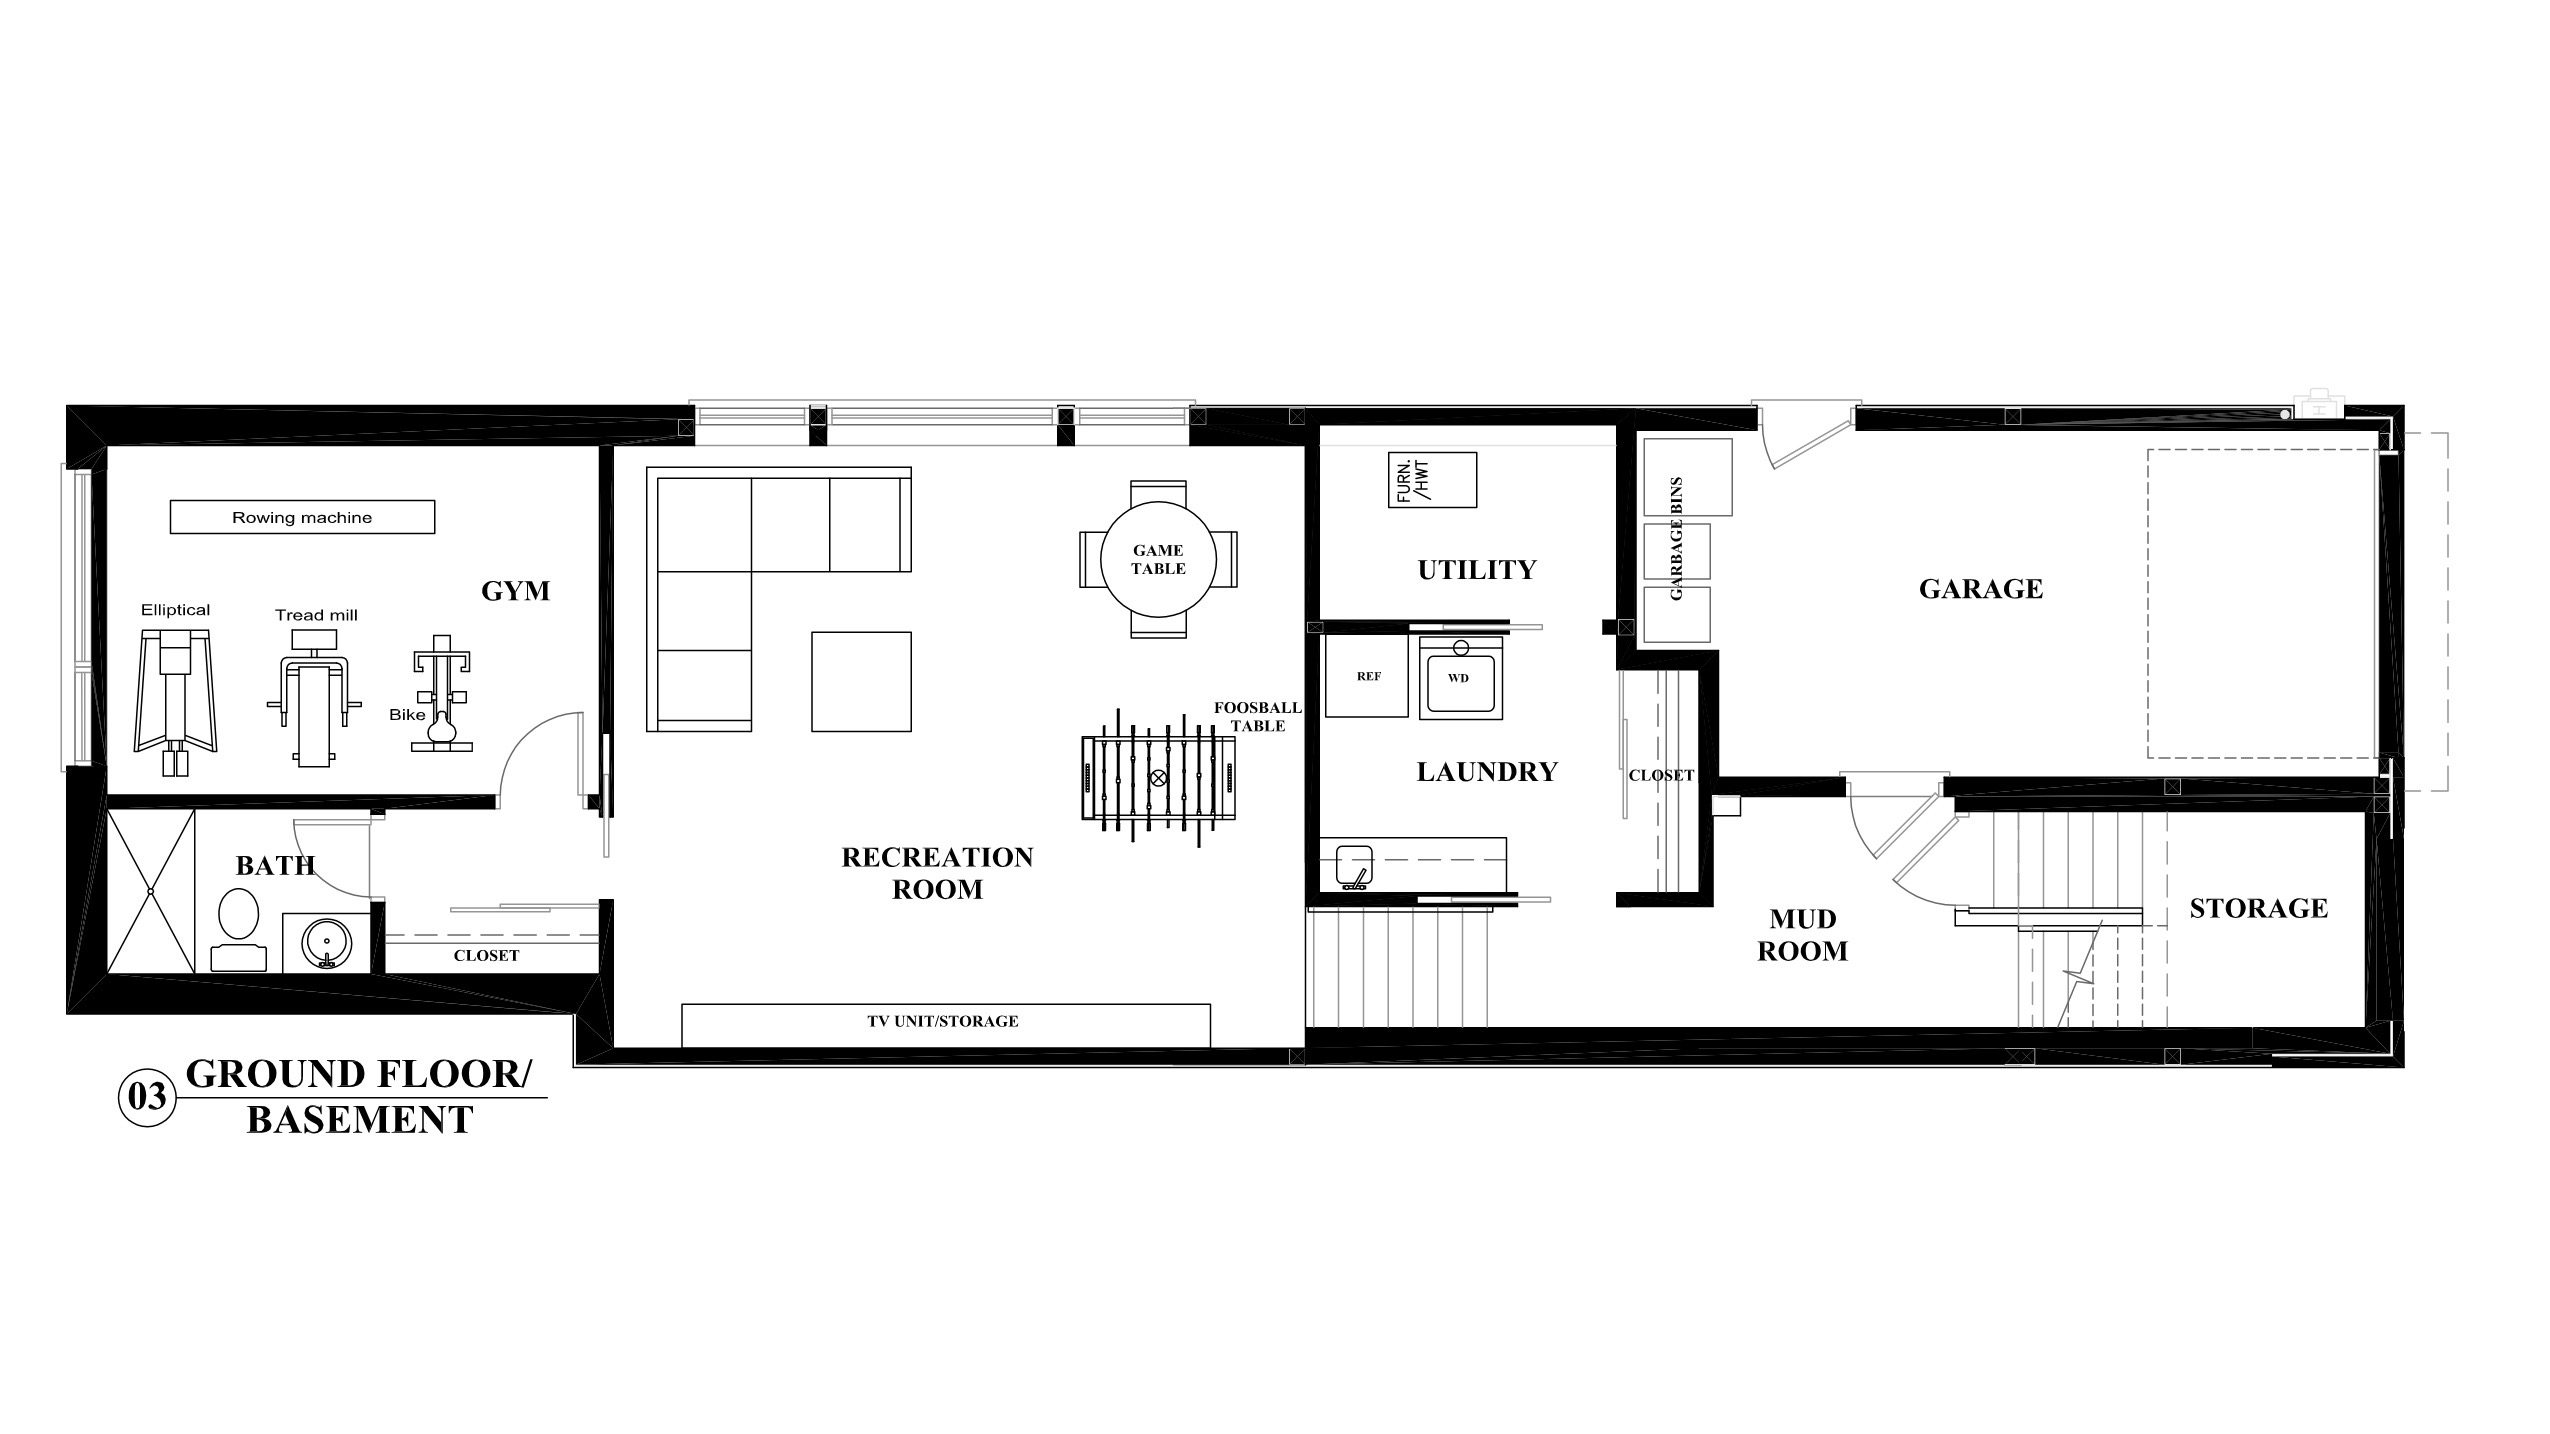 Interior Floor Design Basement Floor Plan An Interior Design Perspective On